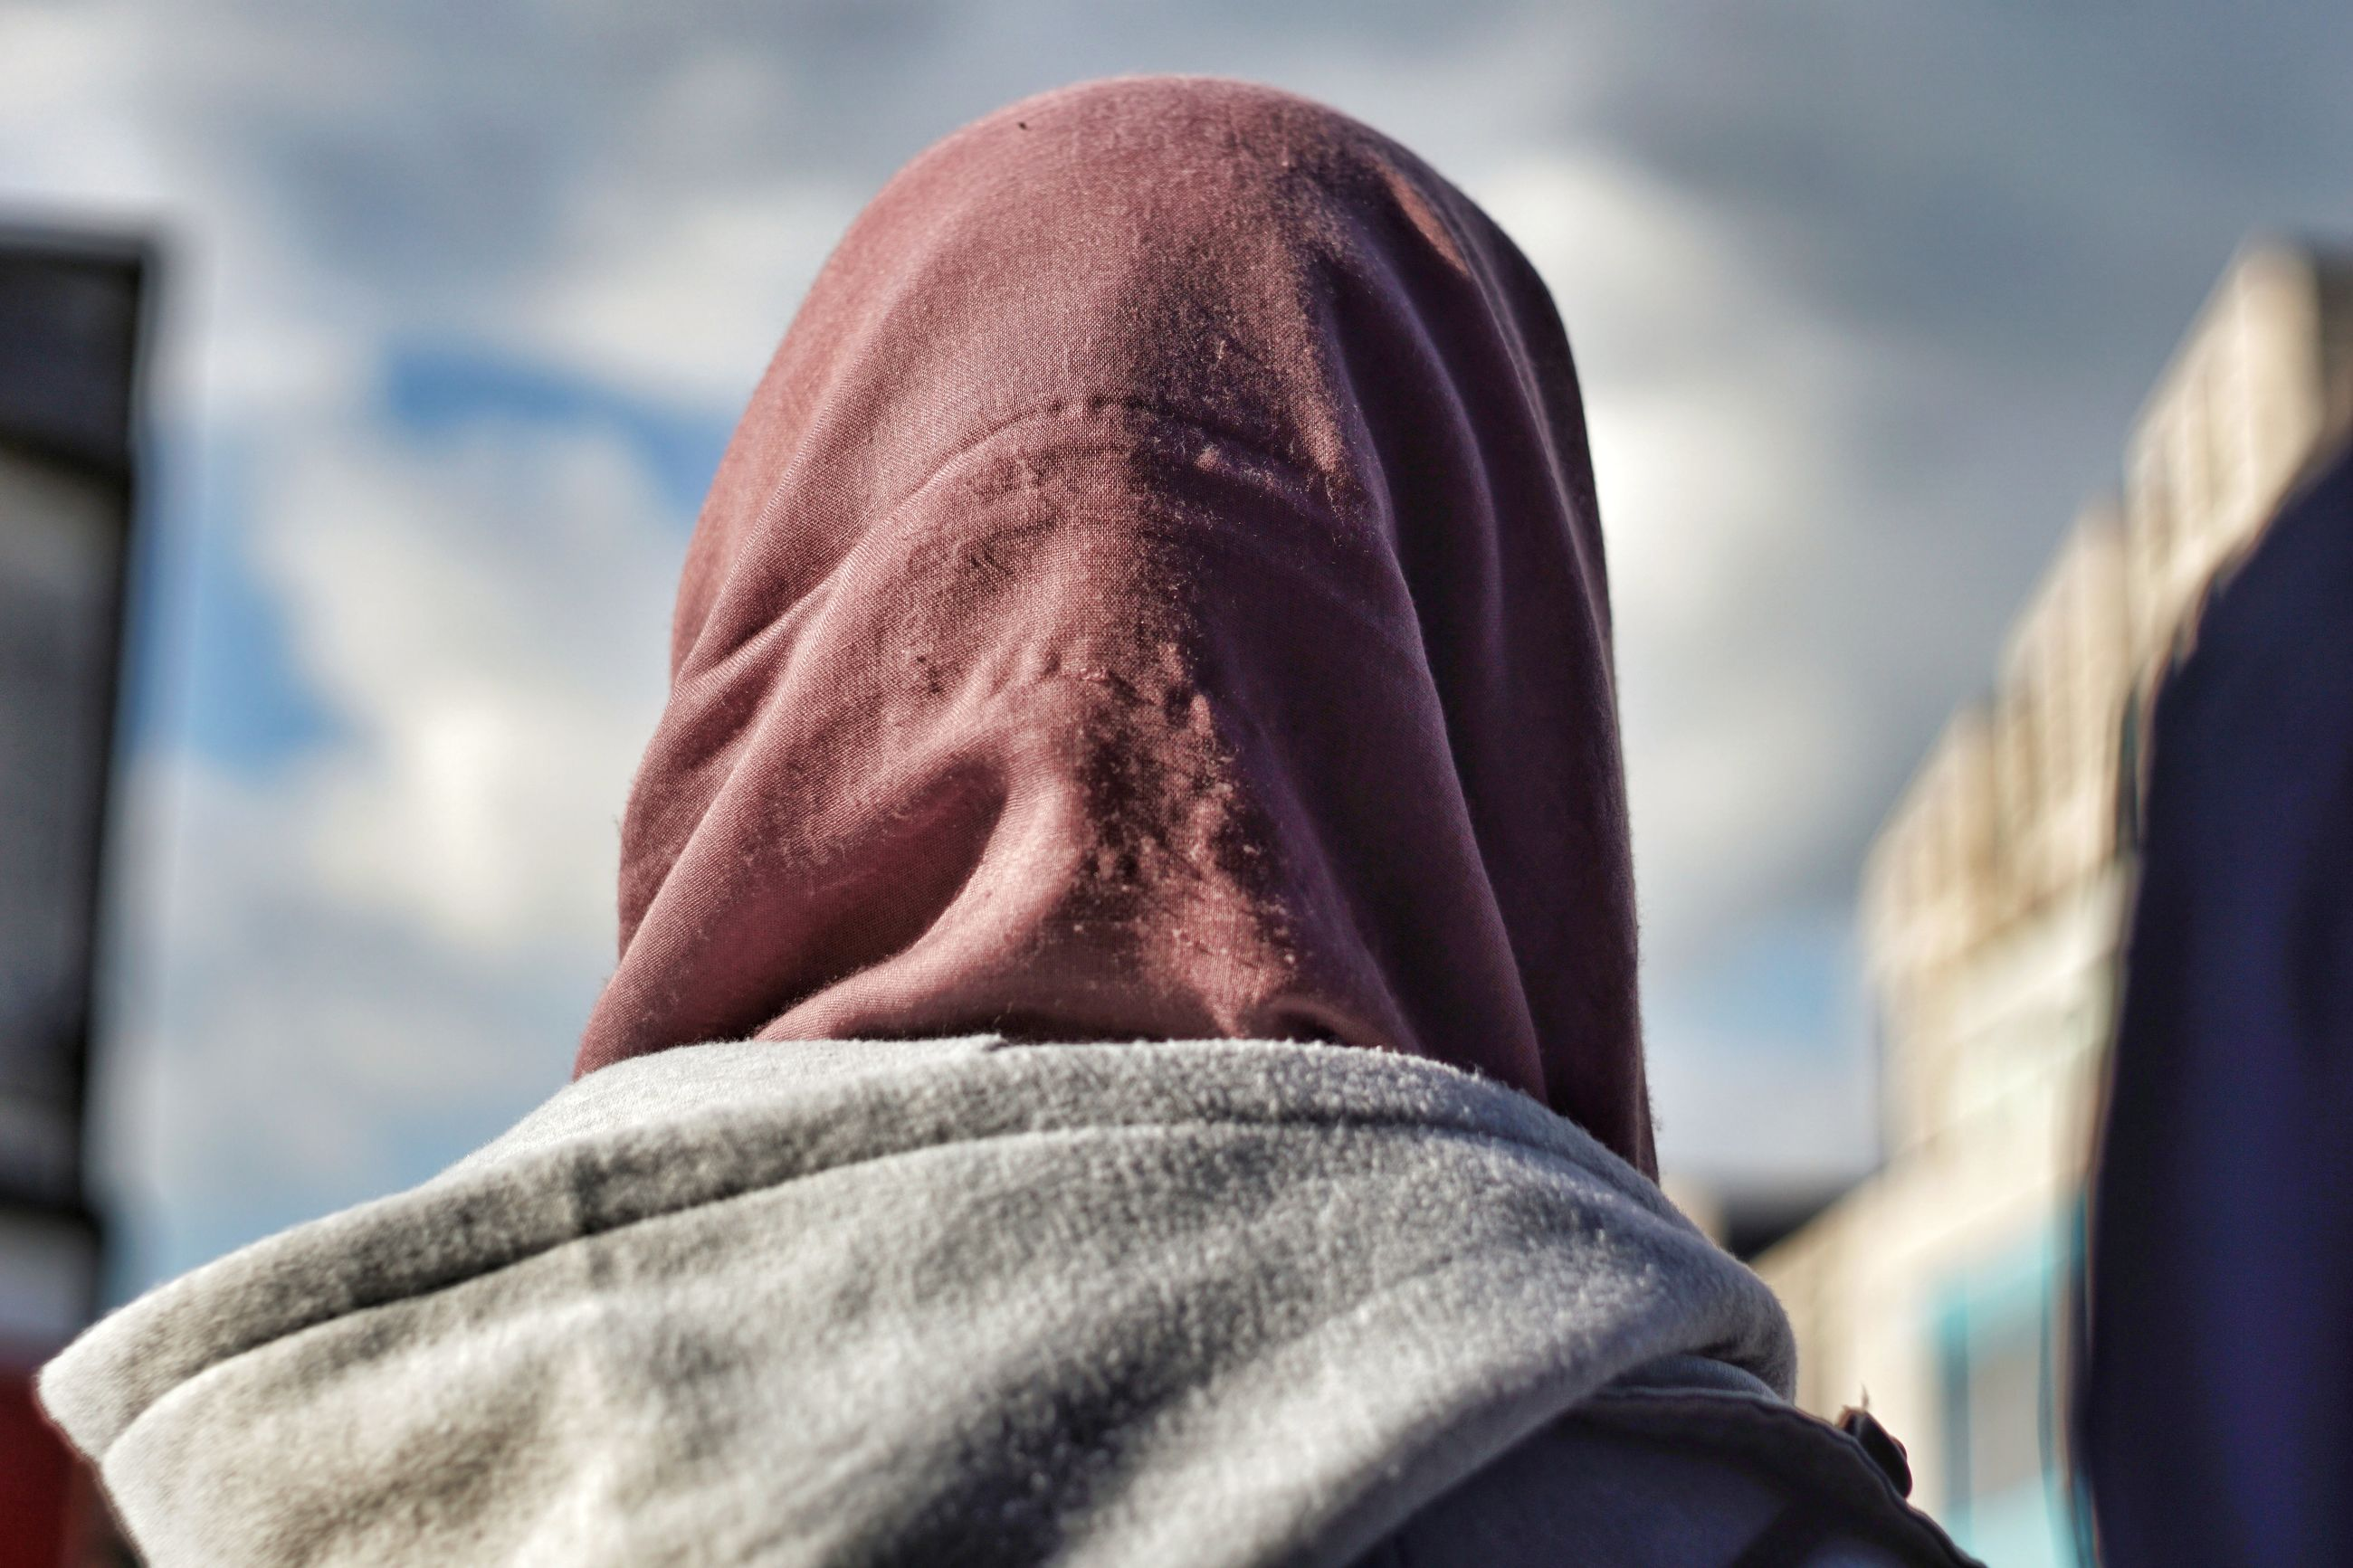 one person, real people, headshot, hood, human body part, men, hood - clothing, body part, day, lifestyles, portrait, rear view, clothing, selective focus, unrecognizable person, cloud - sky, hooded shirt, focus on foreground, sky, outdoors, obscured face, human face